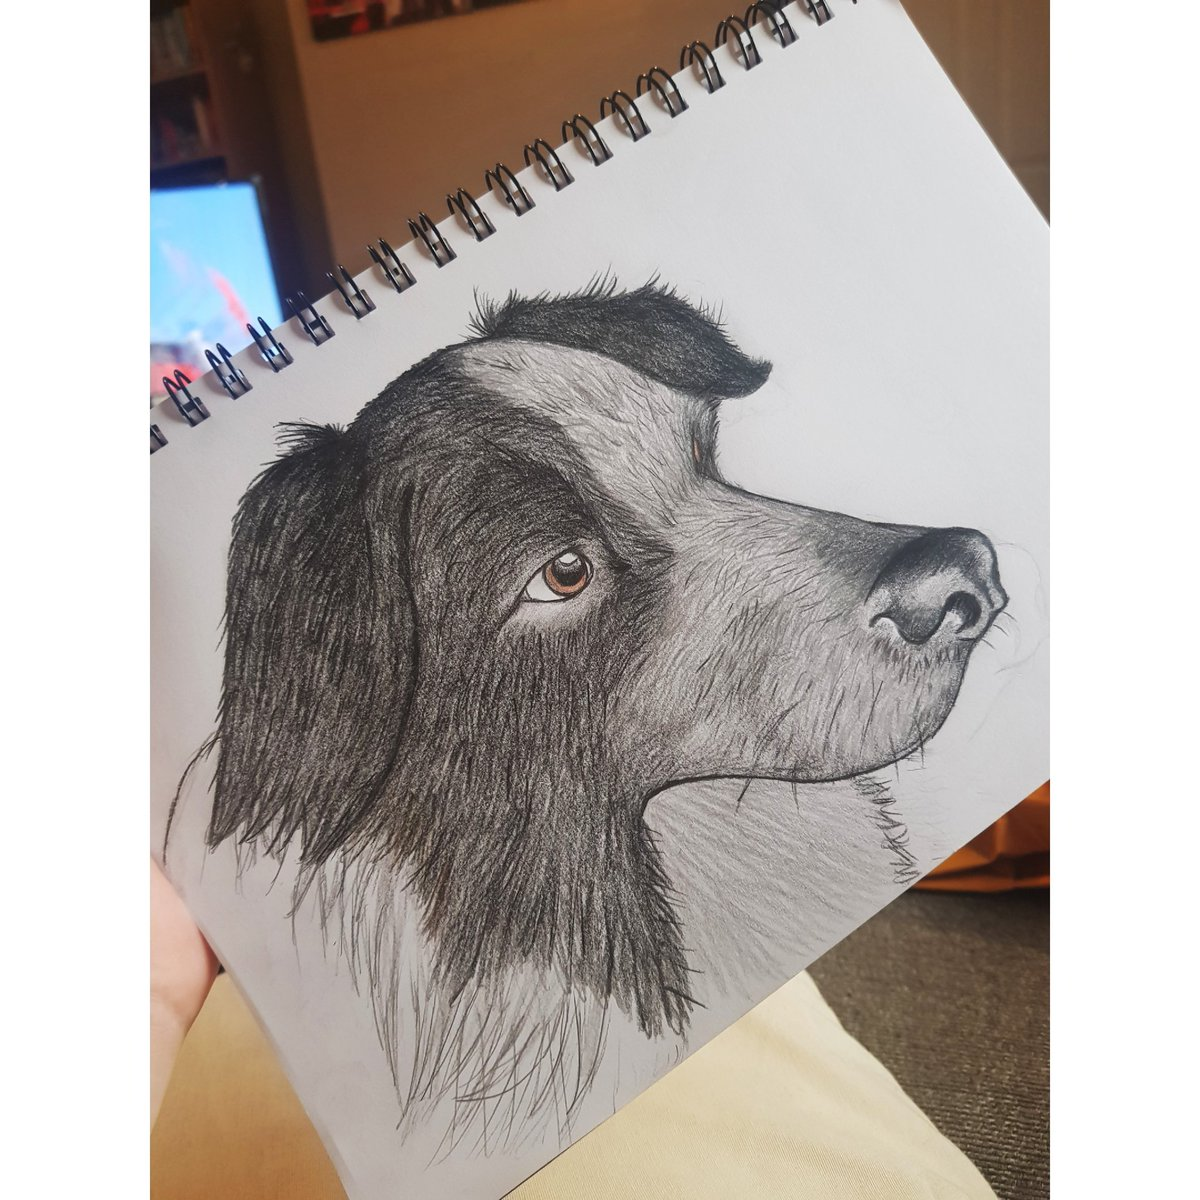 I've started trying to draw again and I'm getting in the practice on our dads doggos🐶🐶 #ArtistOnTwitter #drawingoftheday #dogsoftwitter https://t.co/0ZMvBeRv7n